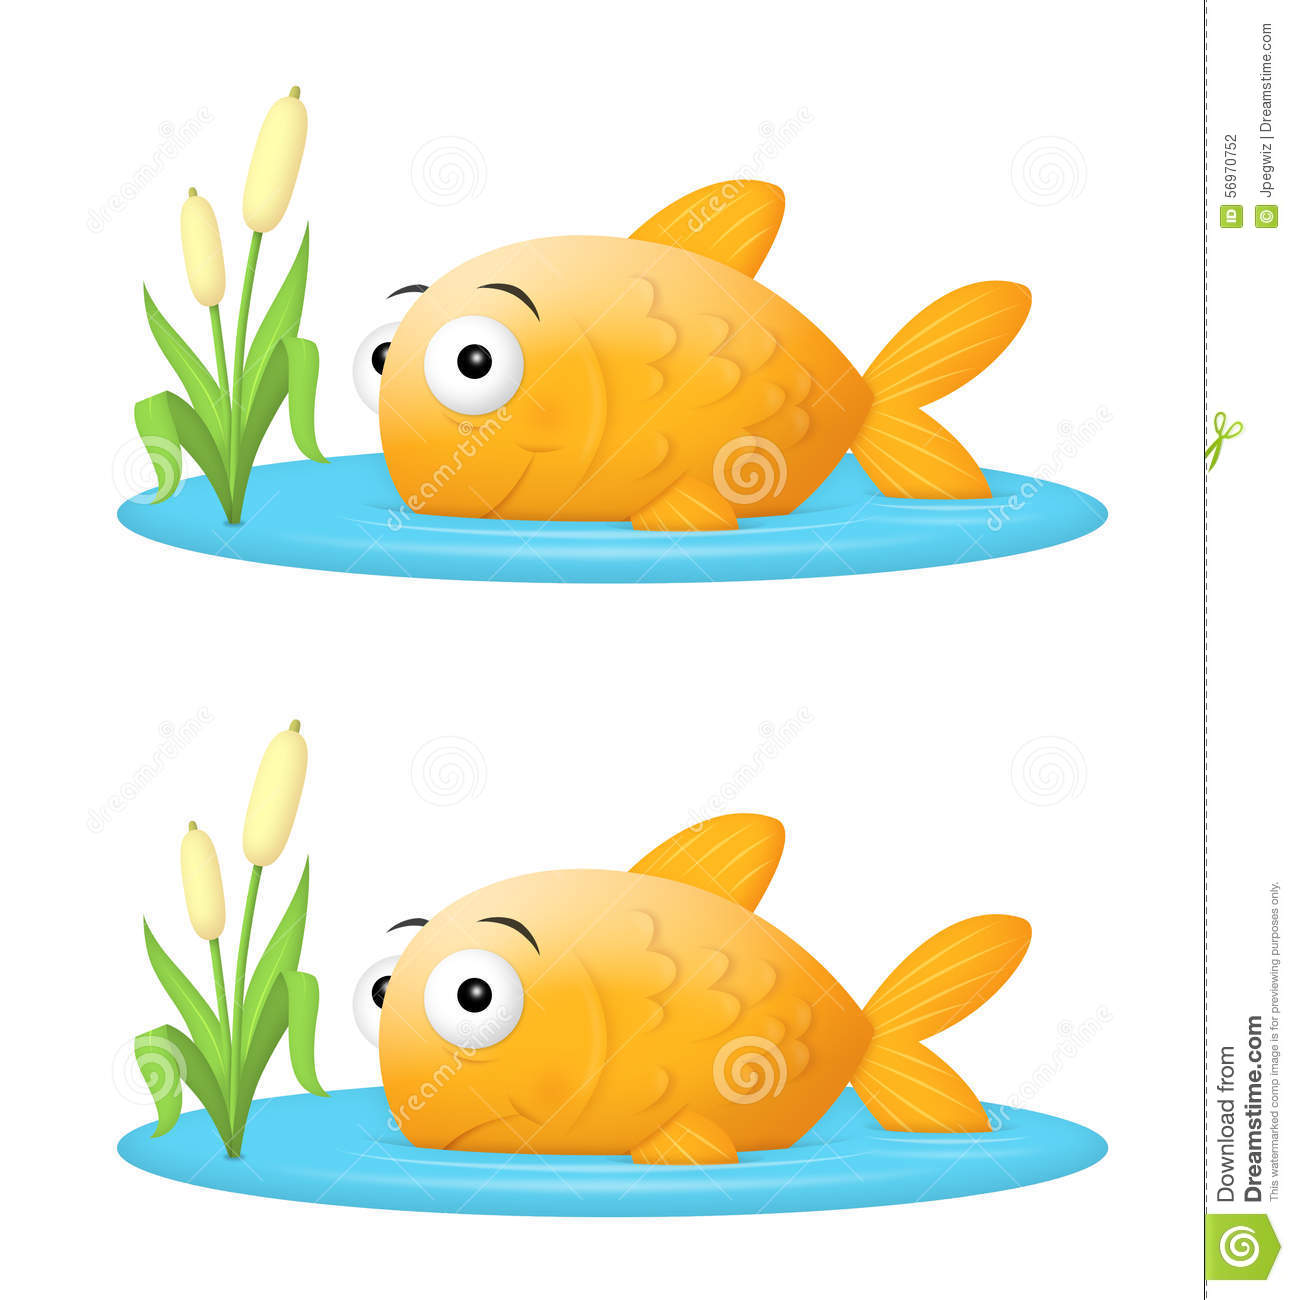 Big fish in a small pond royalty free cartoon for Big fish in a small pond